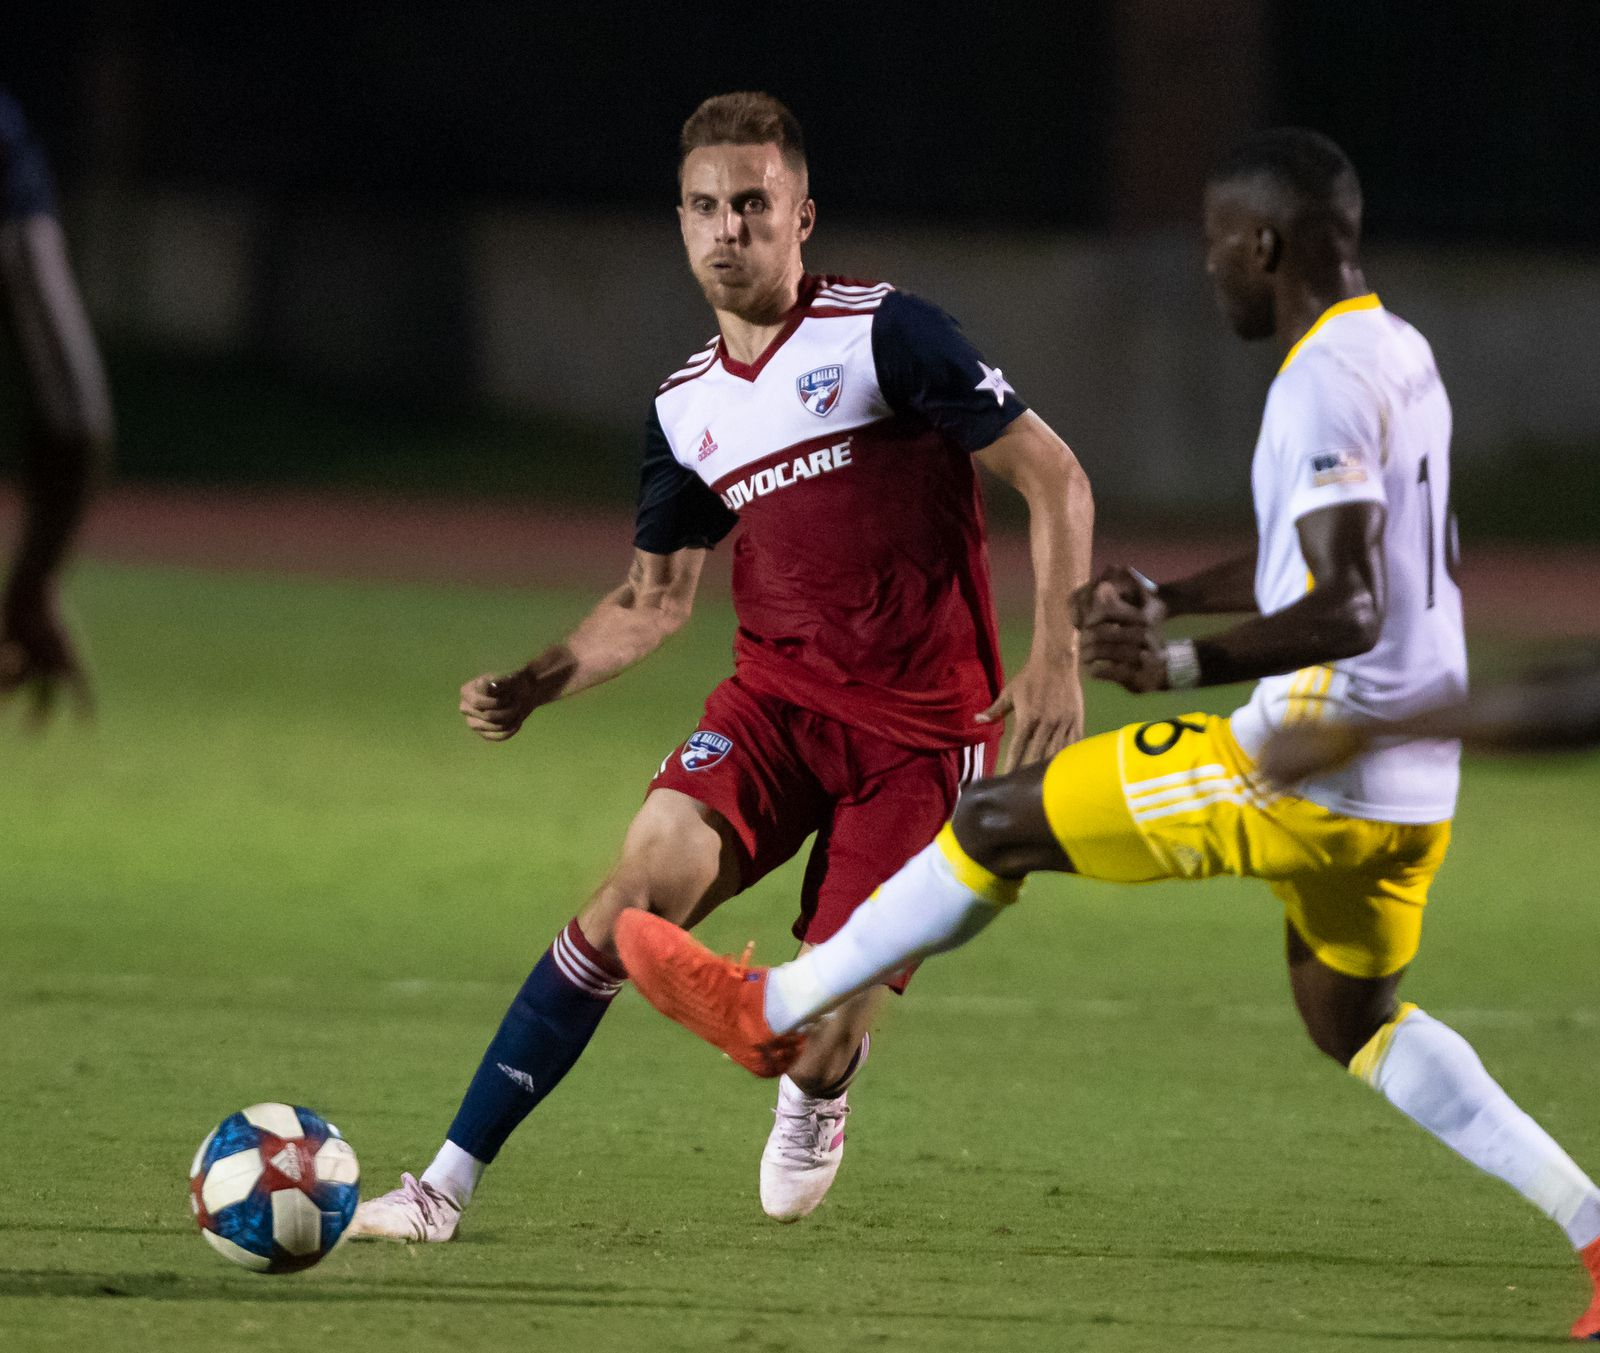 DALLAS, TX - JUNE 19: Bressan in action during the Lamar Hunt U.S. Open Cup round of 16 soccer game between FC Dallas and New Mexico United on June 19, 2019 at Westcott Field in Dallas, Texas.  (Photo by Matthew Visinsky)